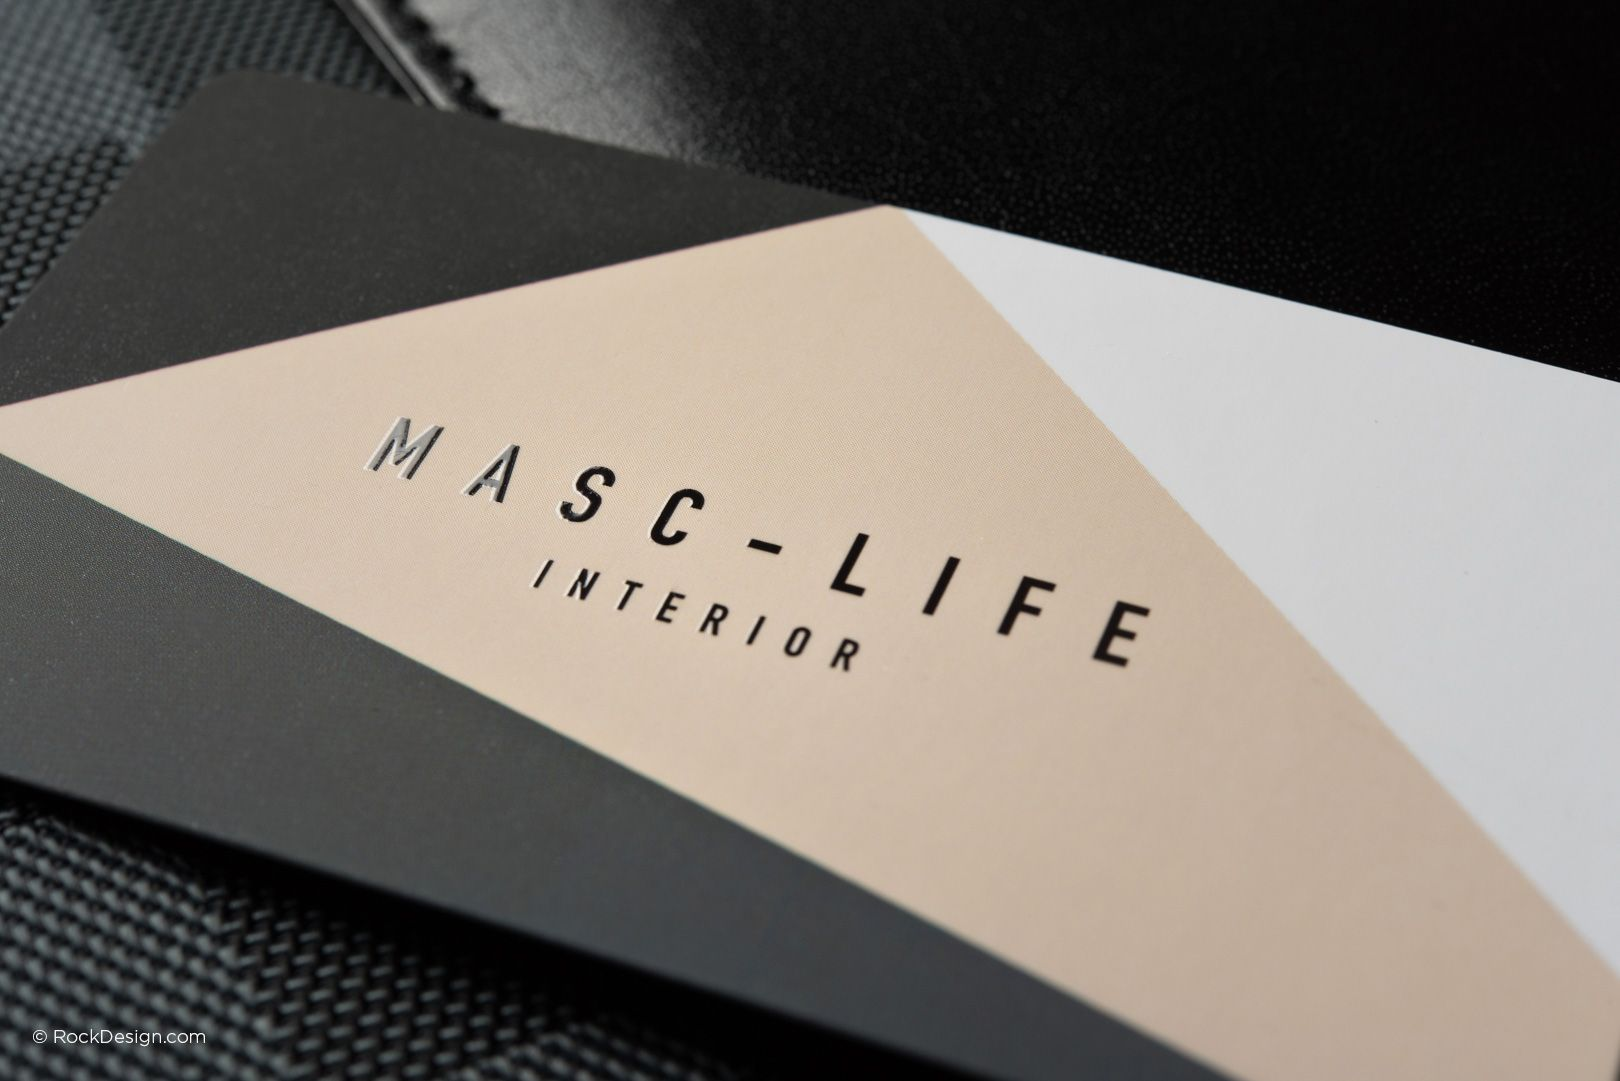 Modern elegant regular suede business card template with spot uv modern elegant regular suede business card template with spot uv masclife rockdesign luxury business wajeb Image collections